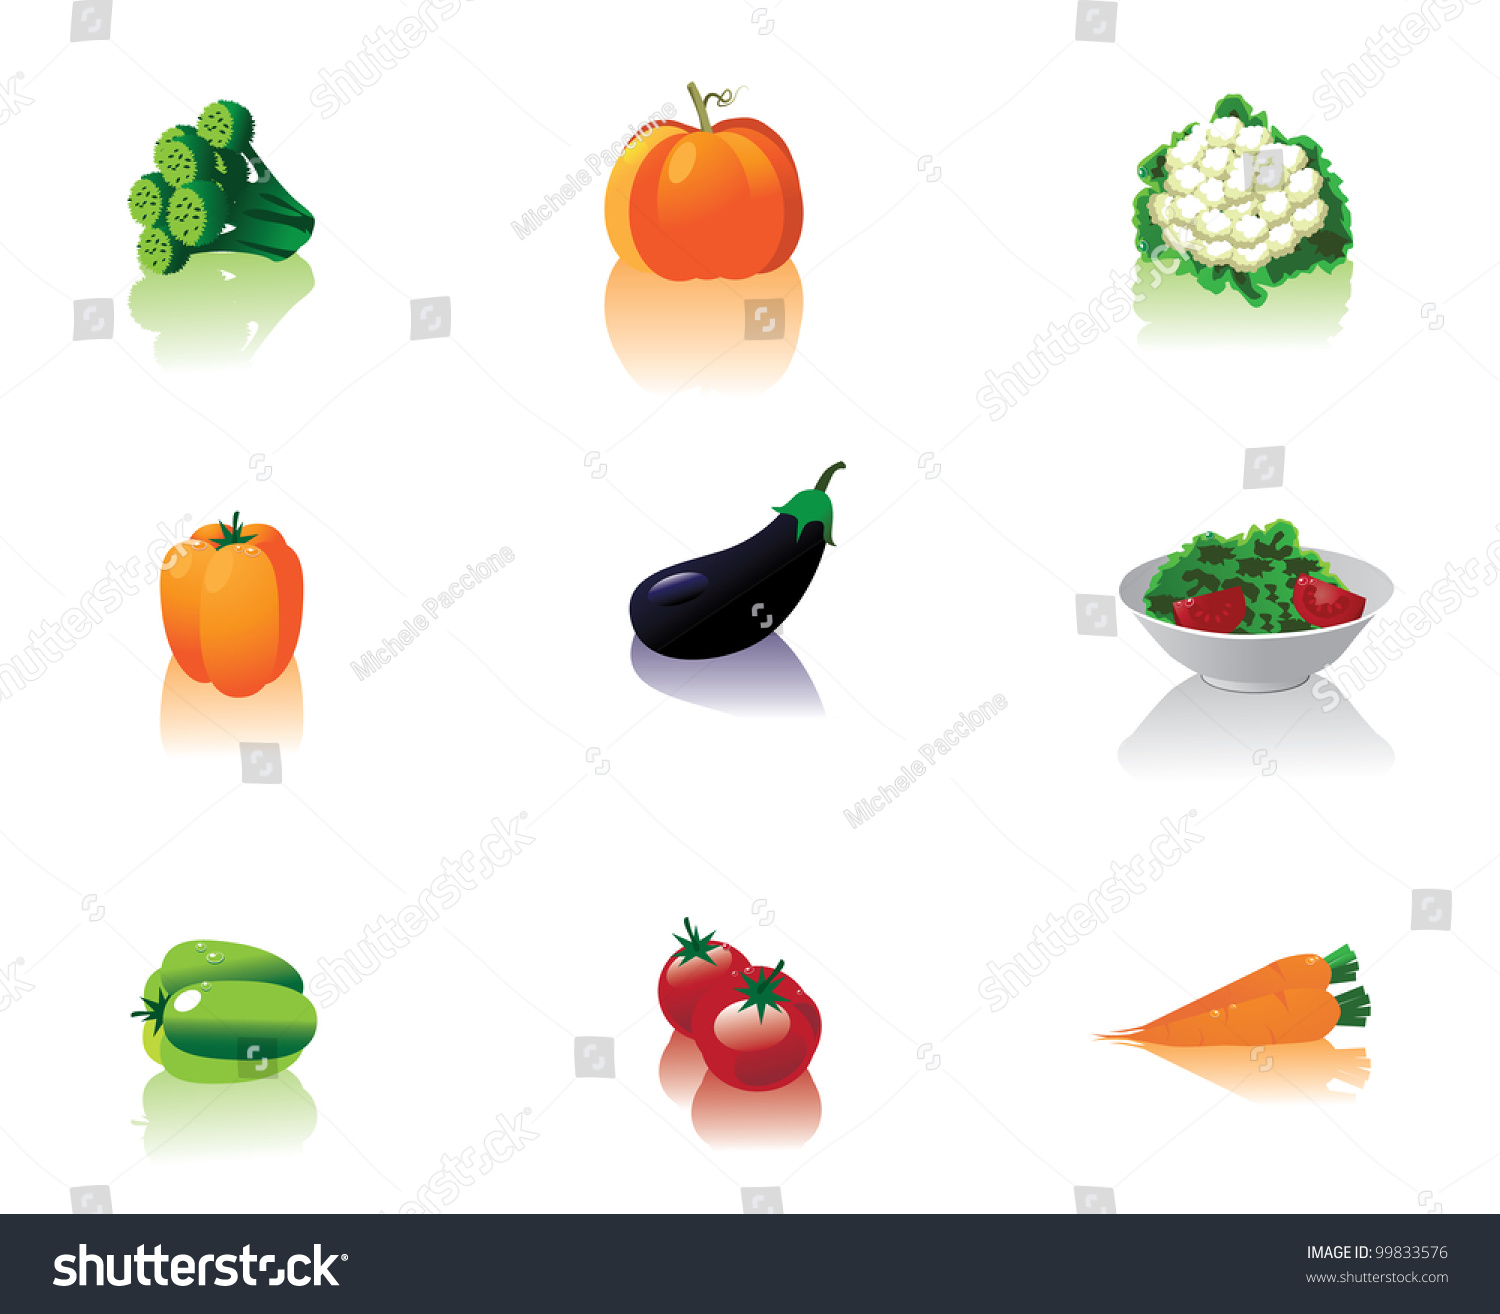 vegetable icon symbol set collection eps 8 vector